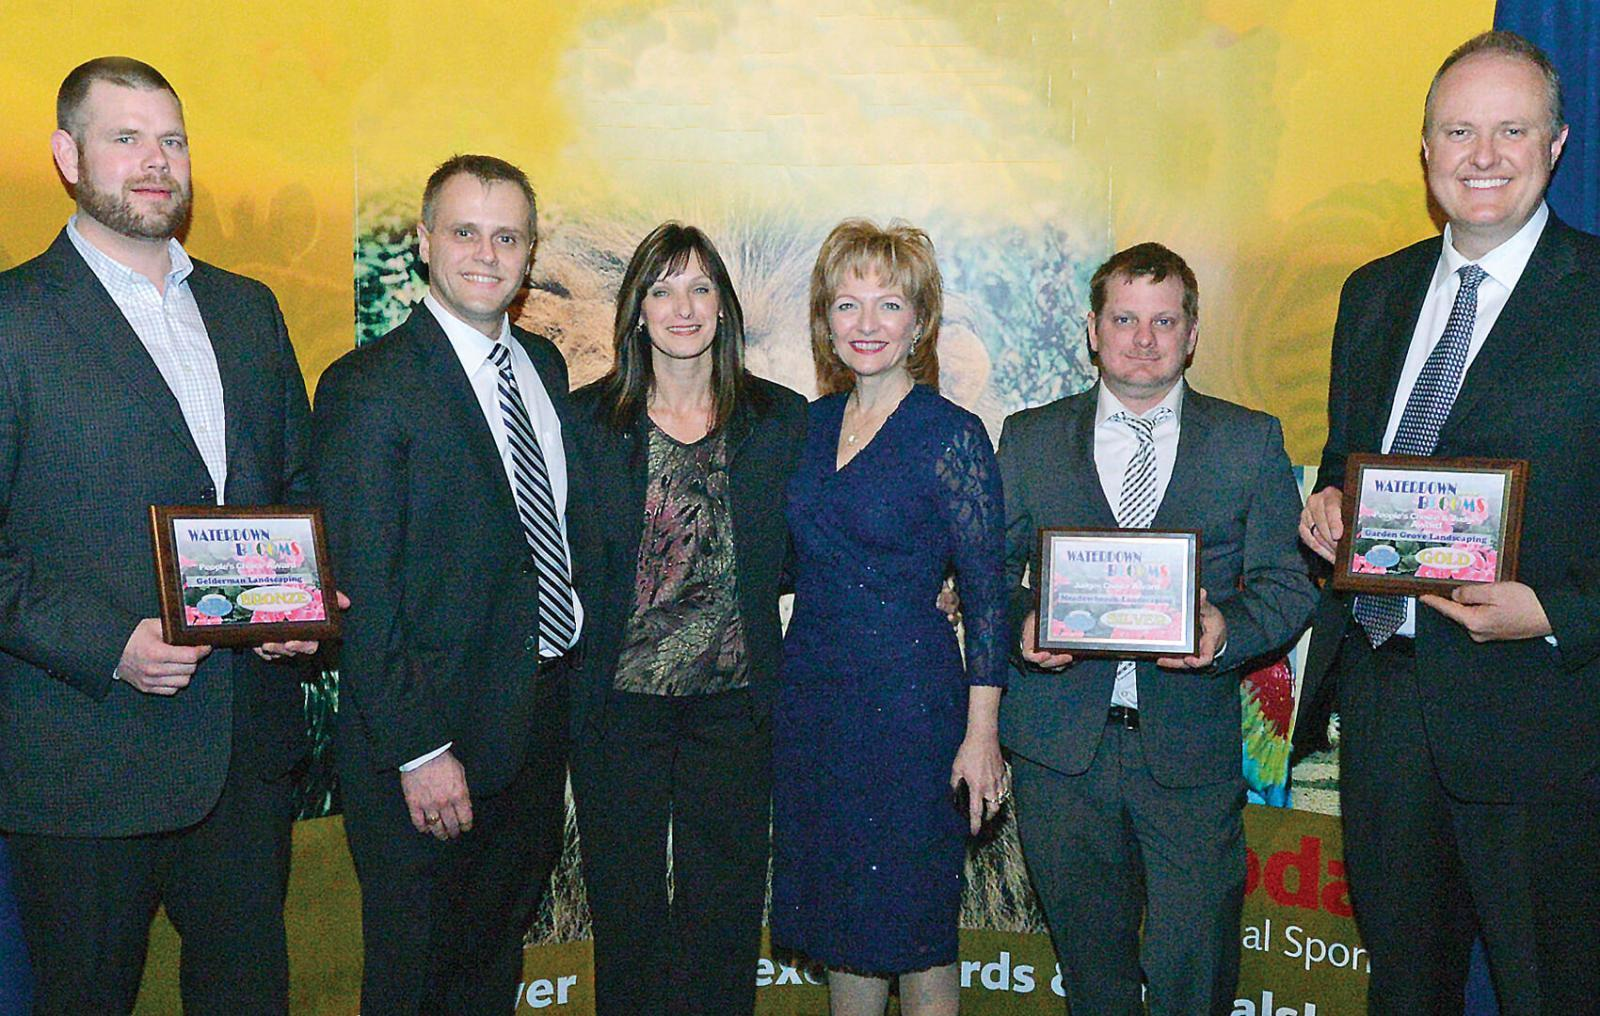 Accepting their awards from the Waterdown BIA, from left, Nathan Helder, Gelderman Landscaping; Paul Lammers, Garden Grove Landscaping; Lee Rozon; Judi Partridge,Ward 15 Councillor; Tim Rivard, accepting for Meadowbrook Landscaping; David Lammers, Garden Grove Landscaping.